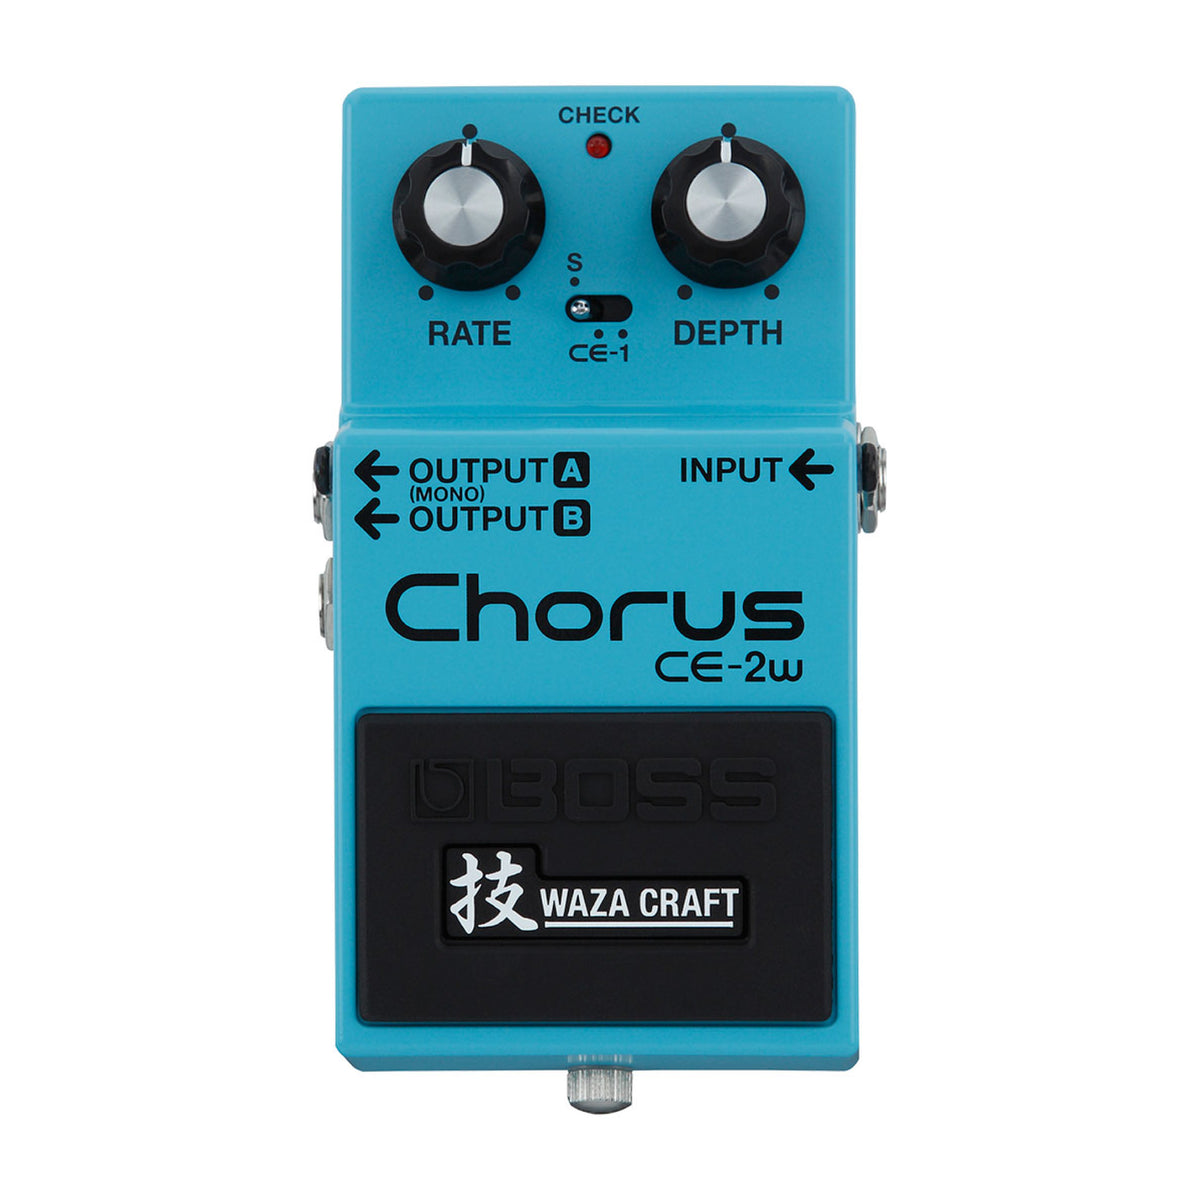 BOSS CE-2w Chorus - Waza Craft - Tarpley Music Company, Inc.